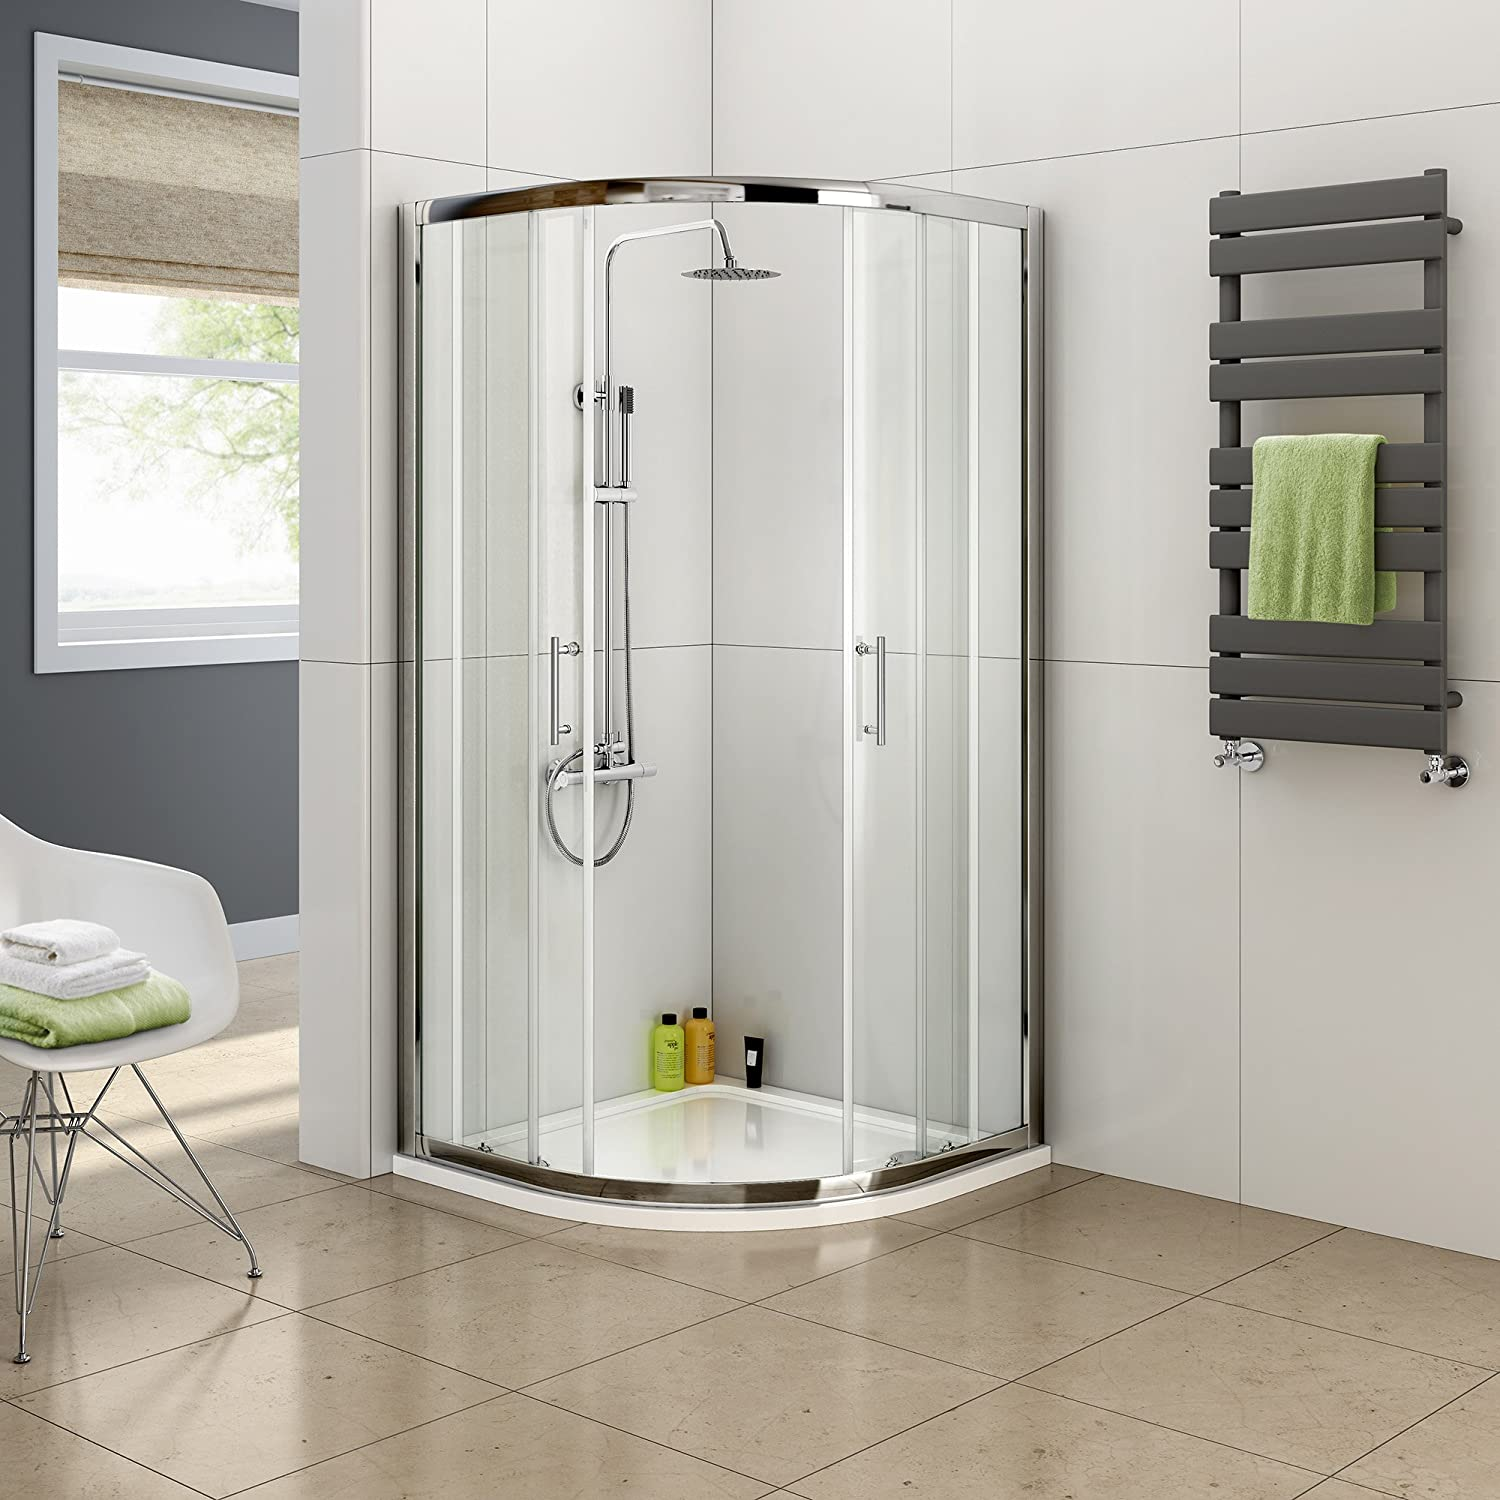 Aica 800 x 800 mm Quadrant Shower Sliding Doors, Glass, Chrome ...